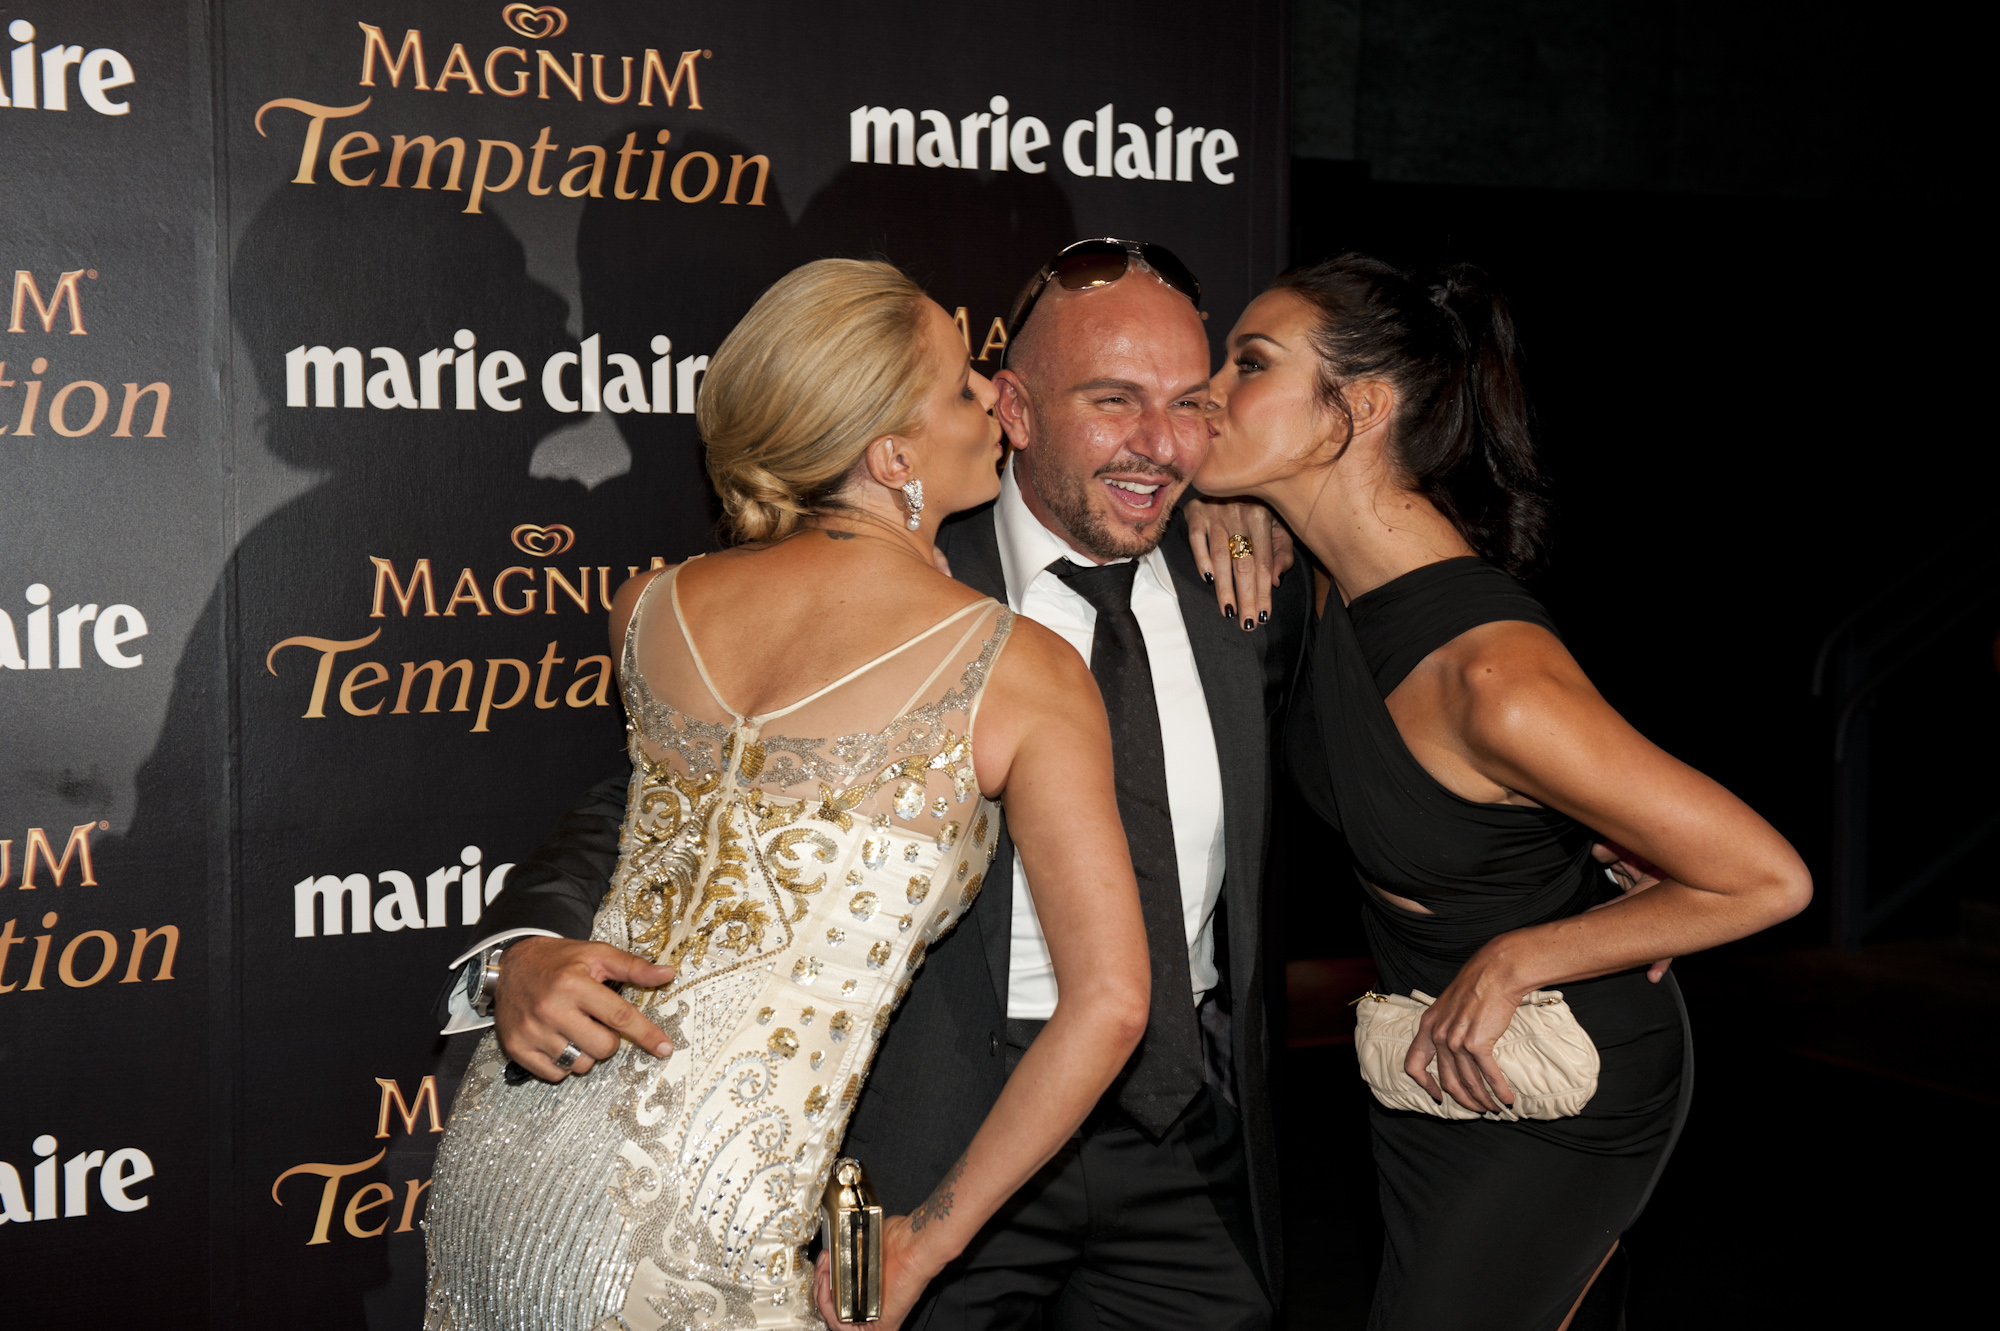 Charlotte Dawson, Alex Perry and Megan Gale